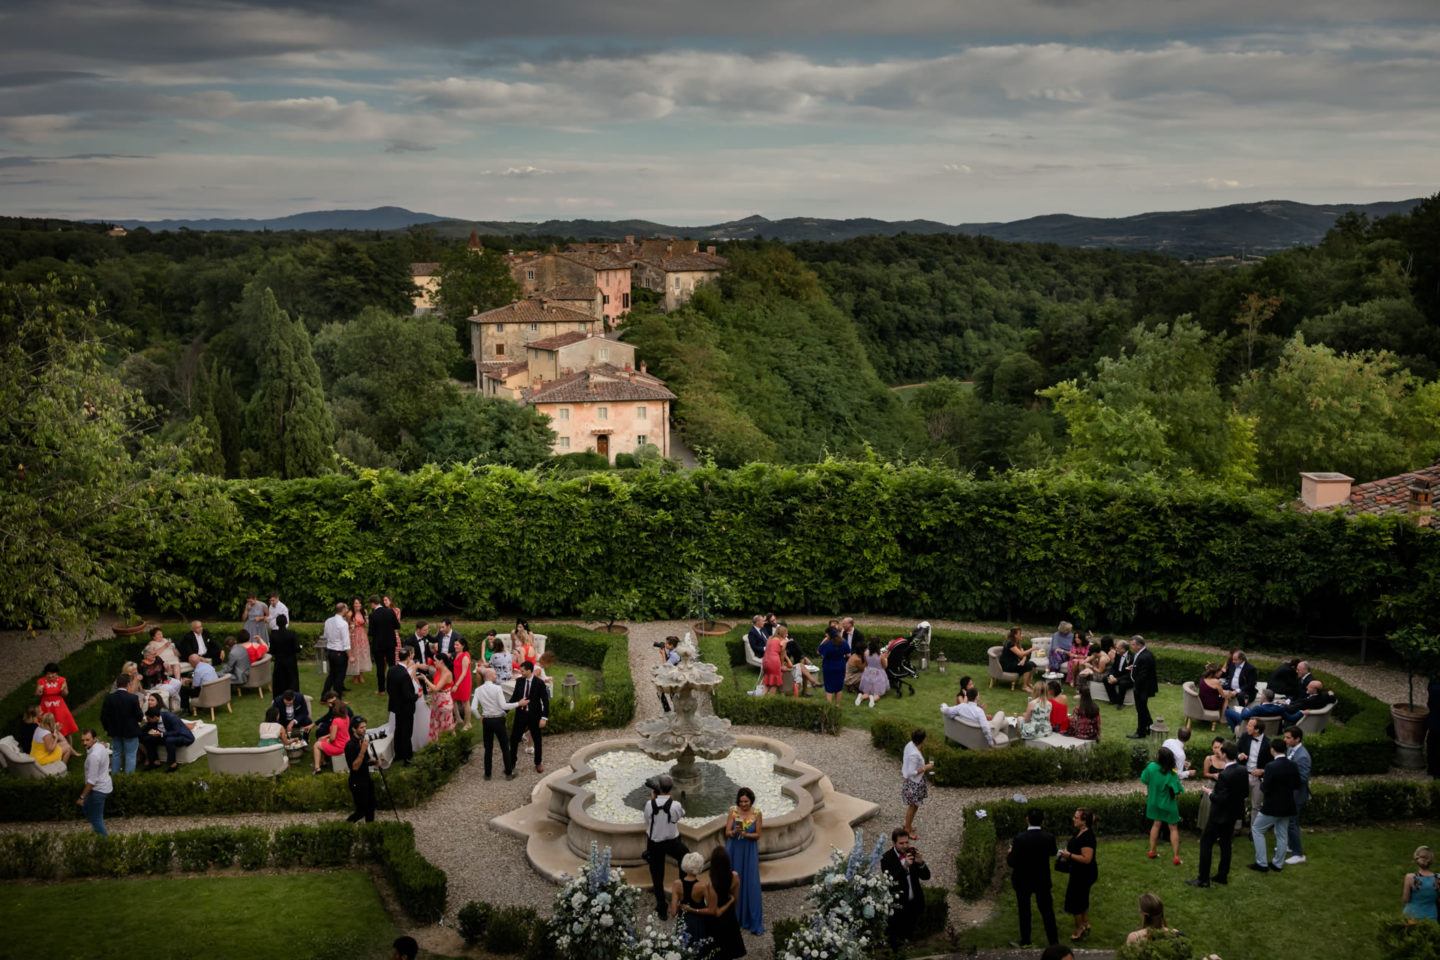 Tuscany :: Amazing wedding day at Il Borro :: Luxury wedding photography - 34 :: Tuscany